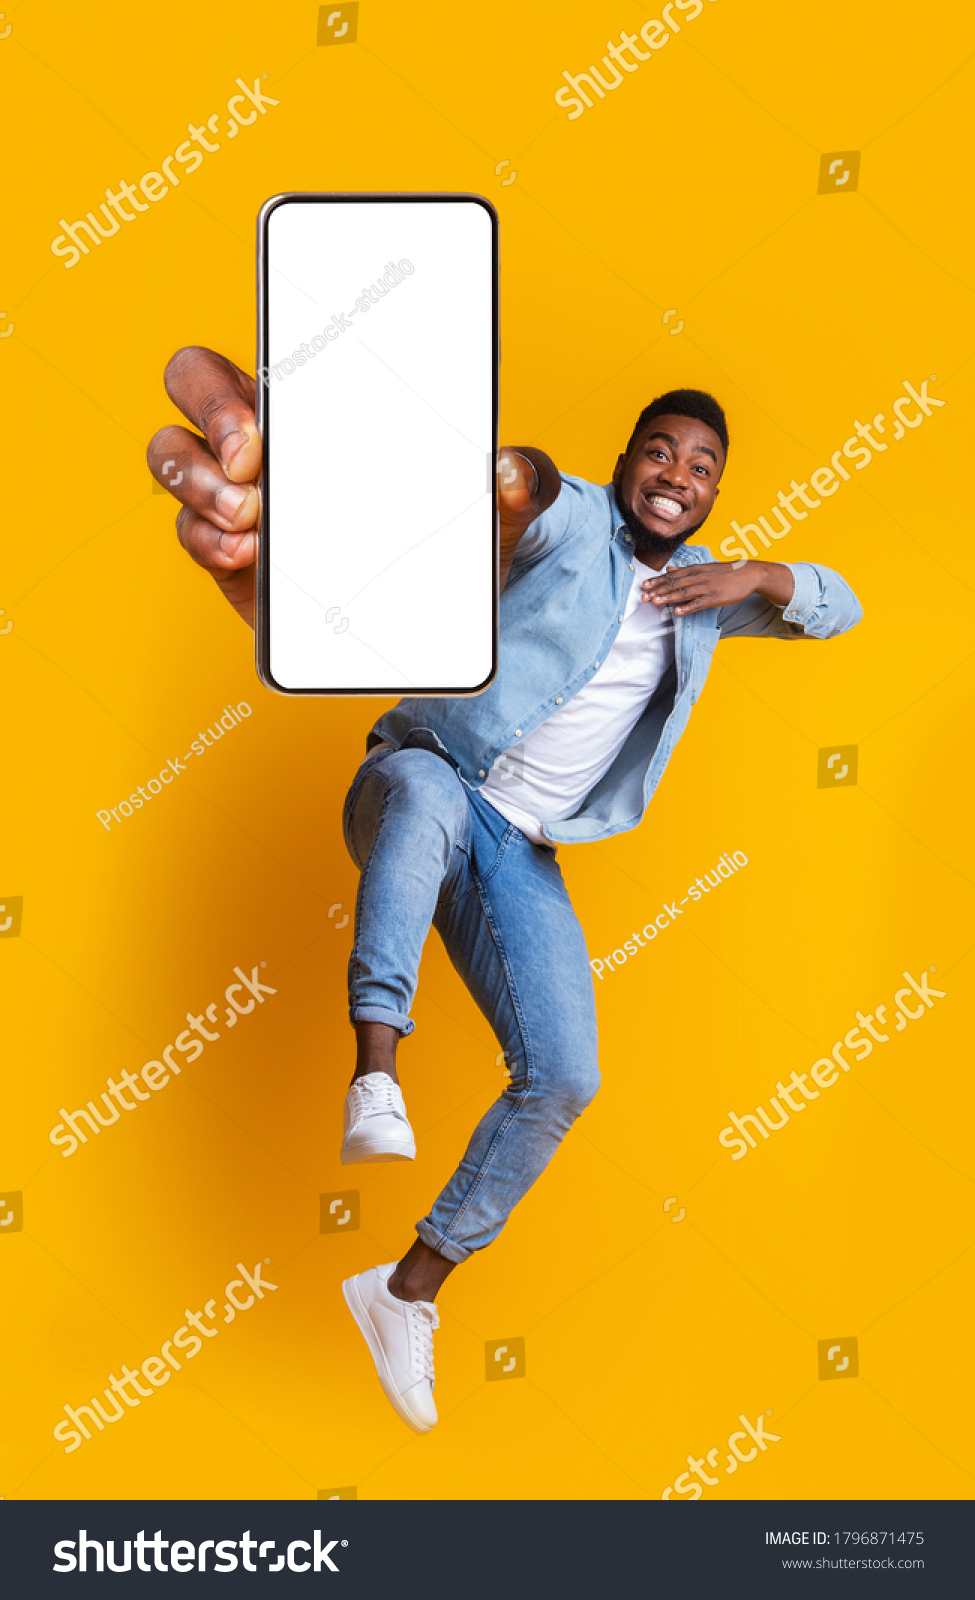 Advertisement for mobile application. Excited african guy dancing over yellow background, showing modern smartphone with empty screen, collage #1796871475